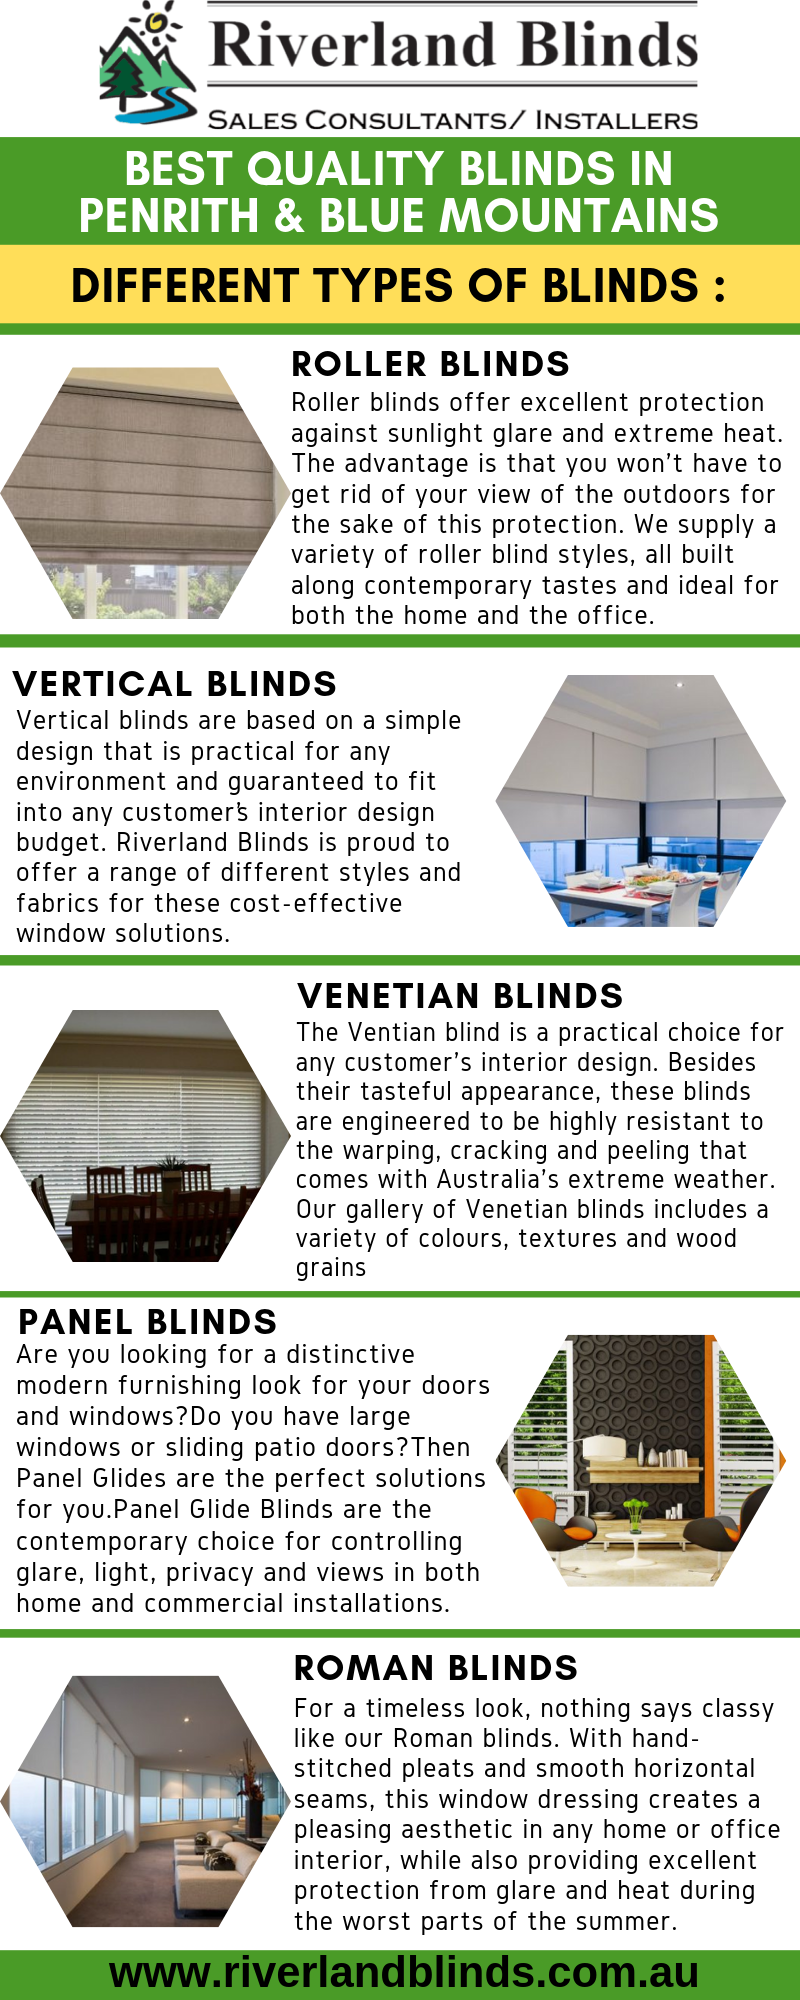 Blinds Installation in Penrith & Blue Mountains Blinds